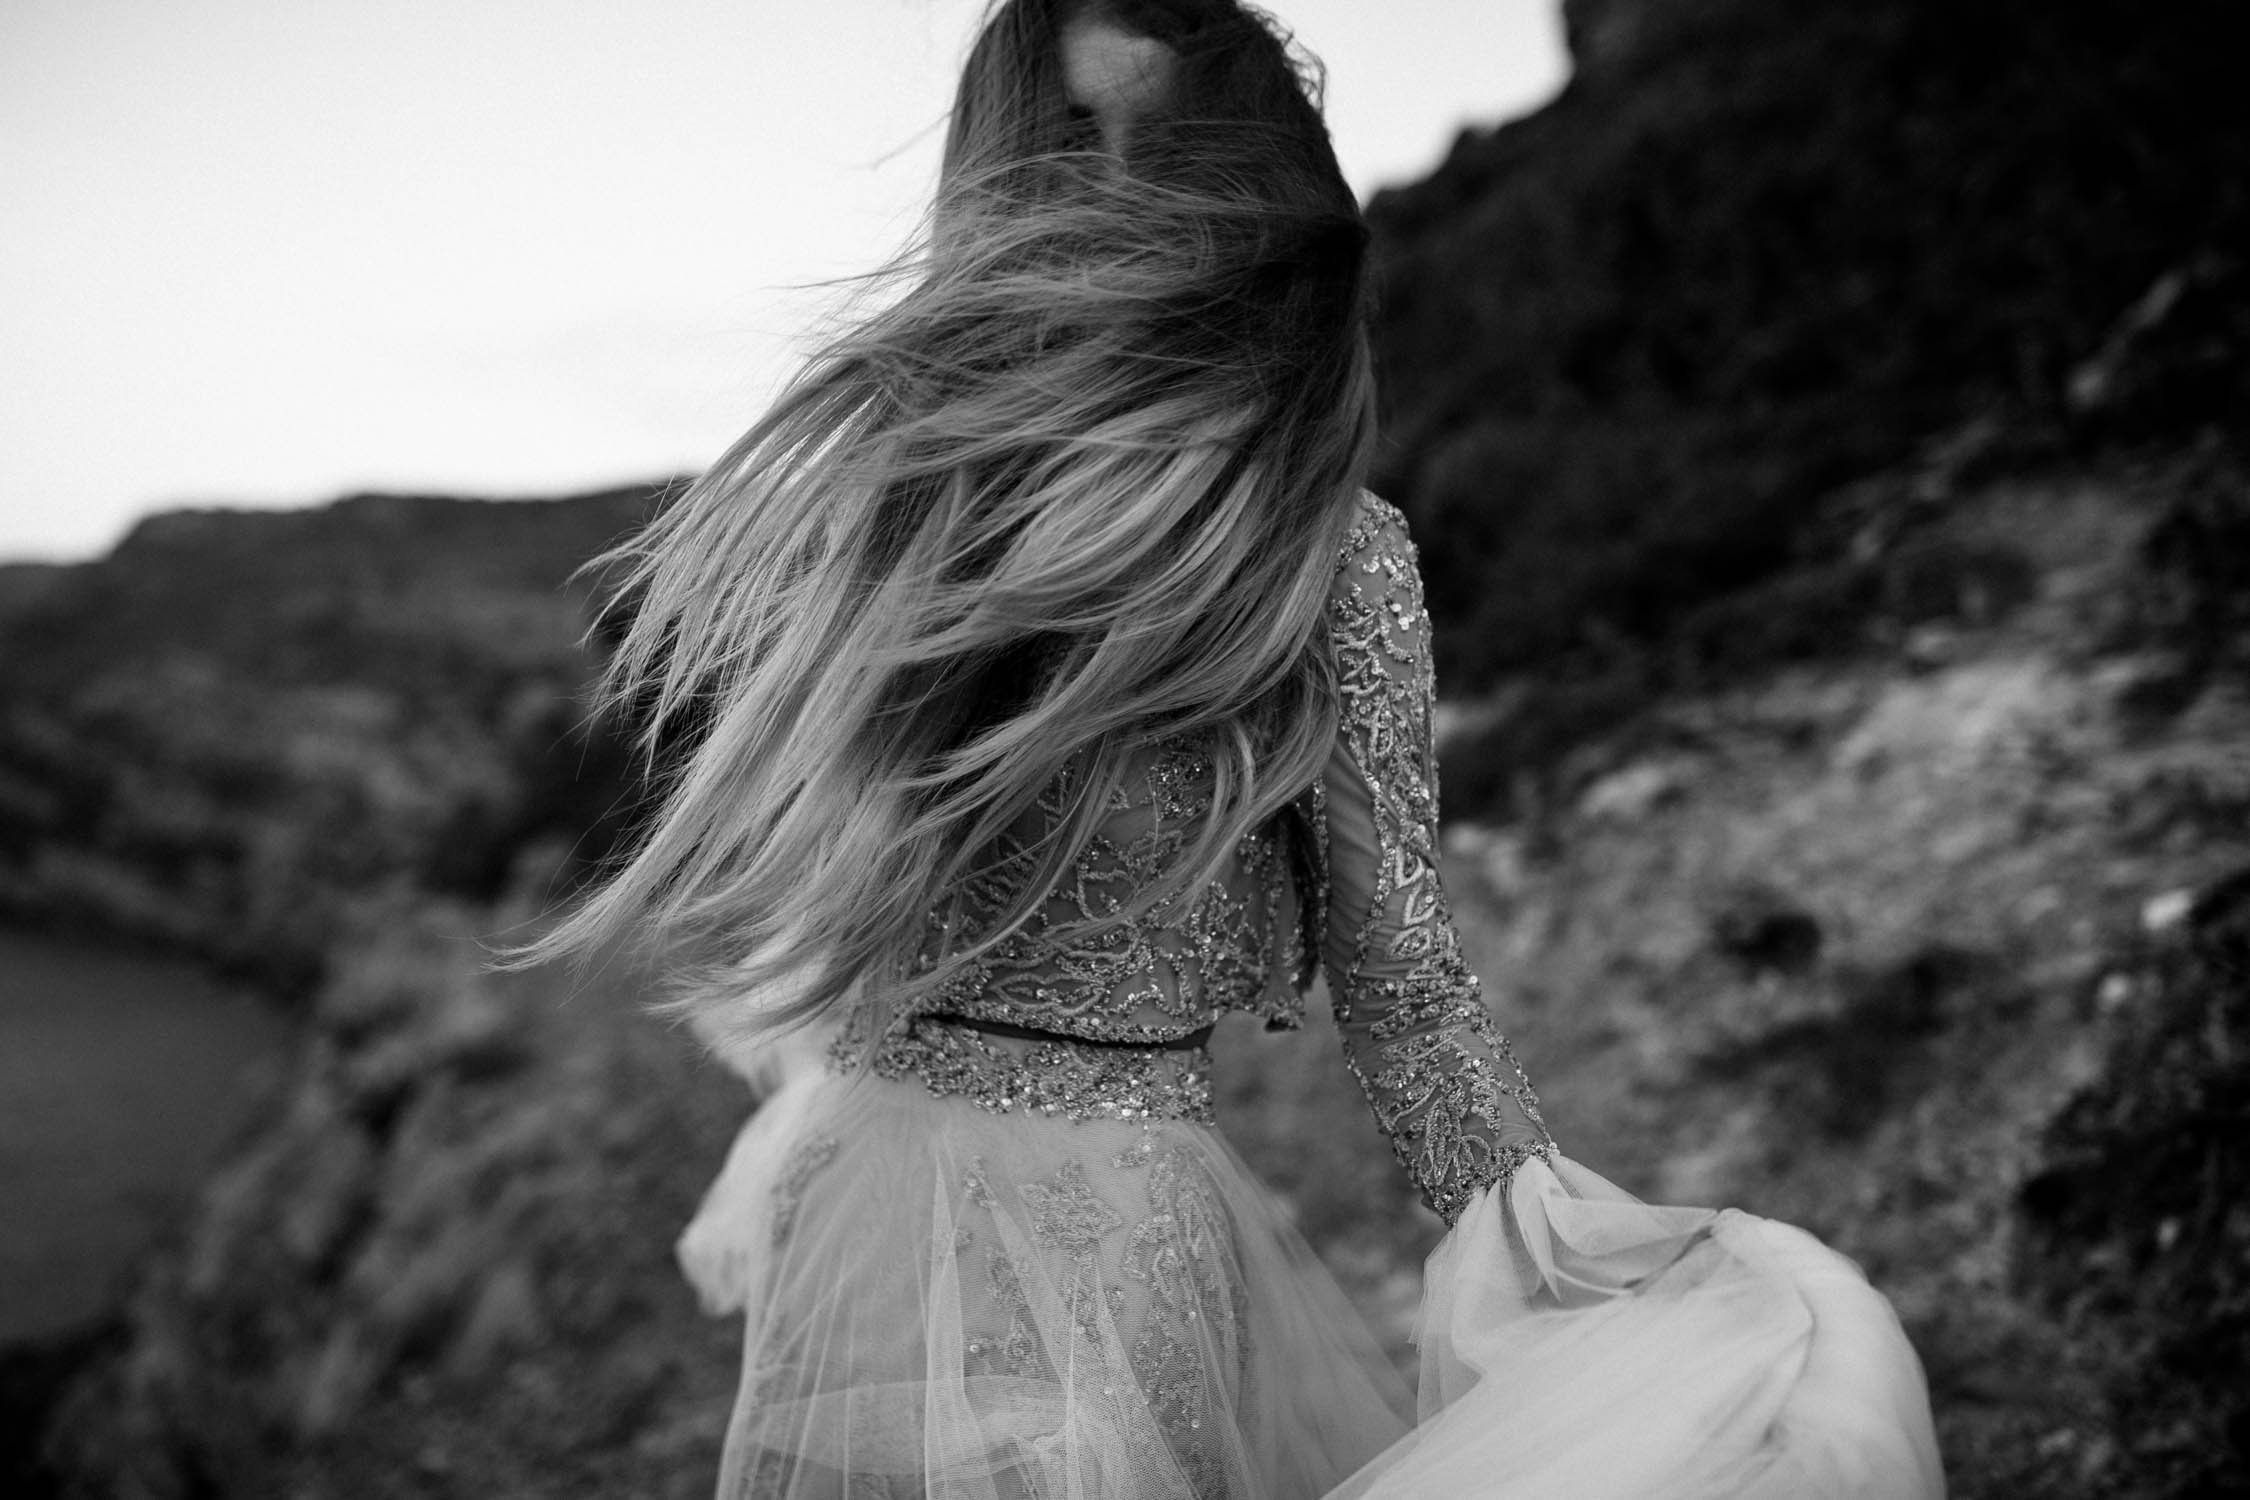 Boho bride wears gypsy wedding dress with flared long sleeves, sheer skirt and gold detailed top shakes her long hair in the wind